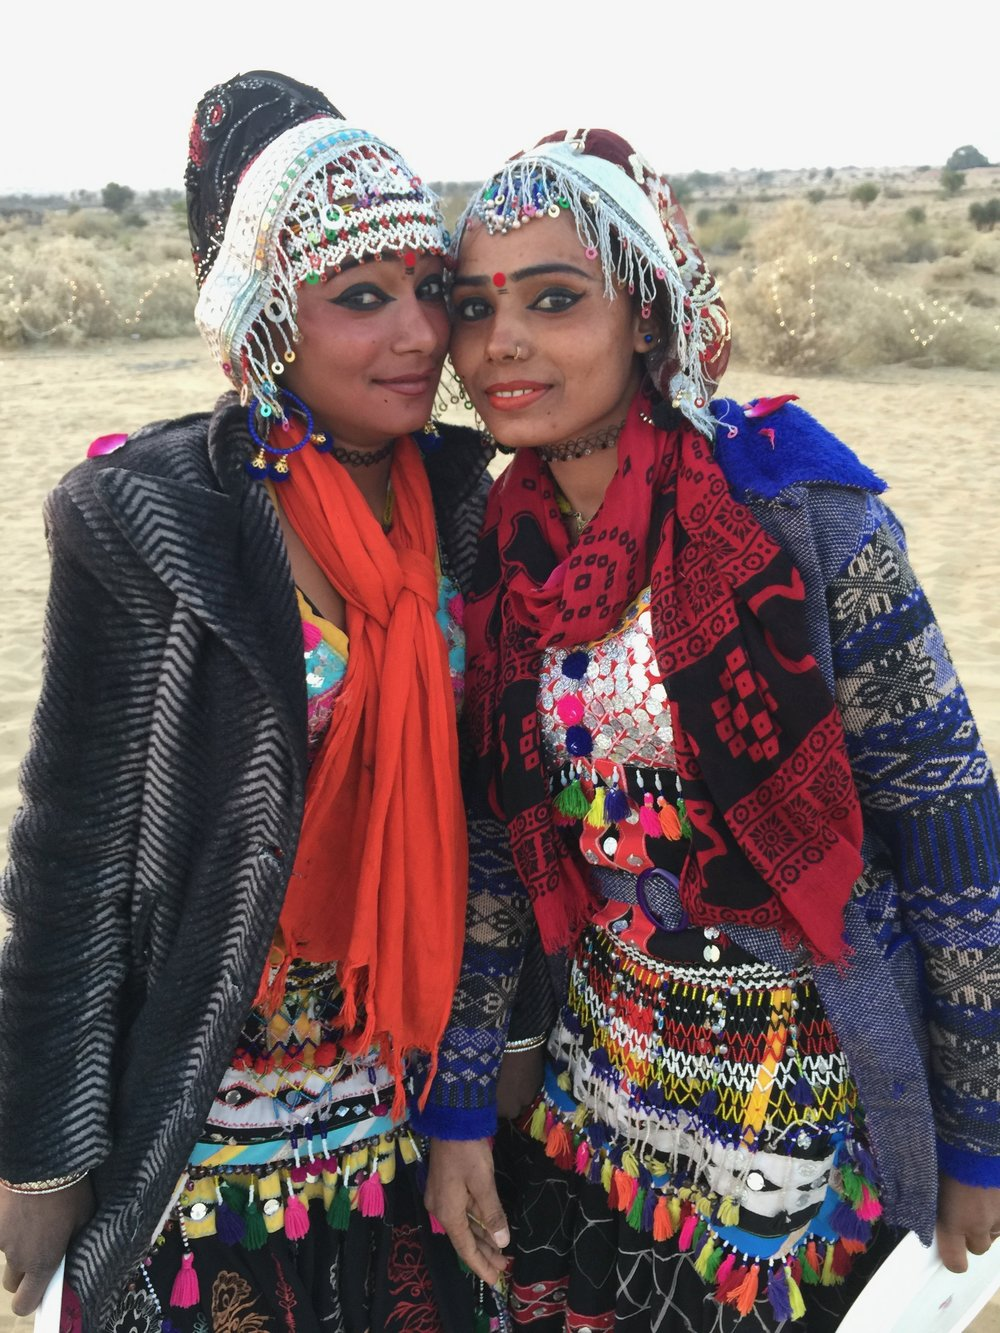 Bikaner tribal costume